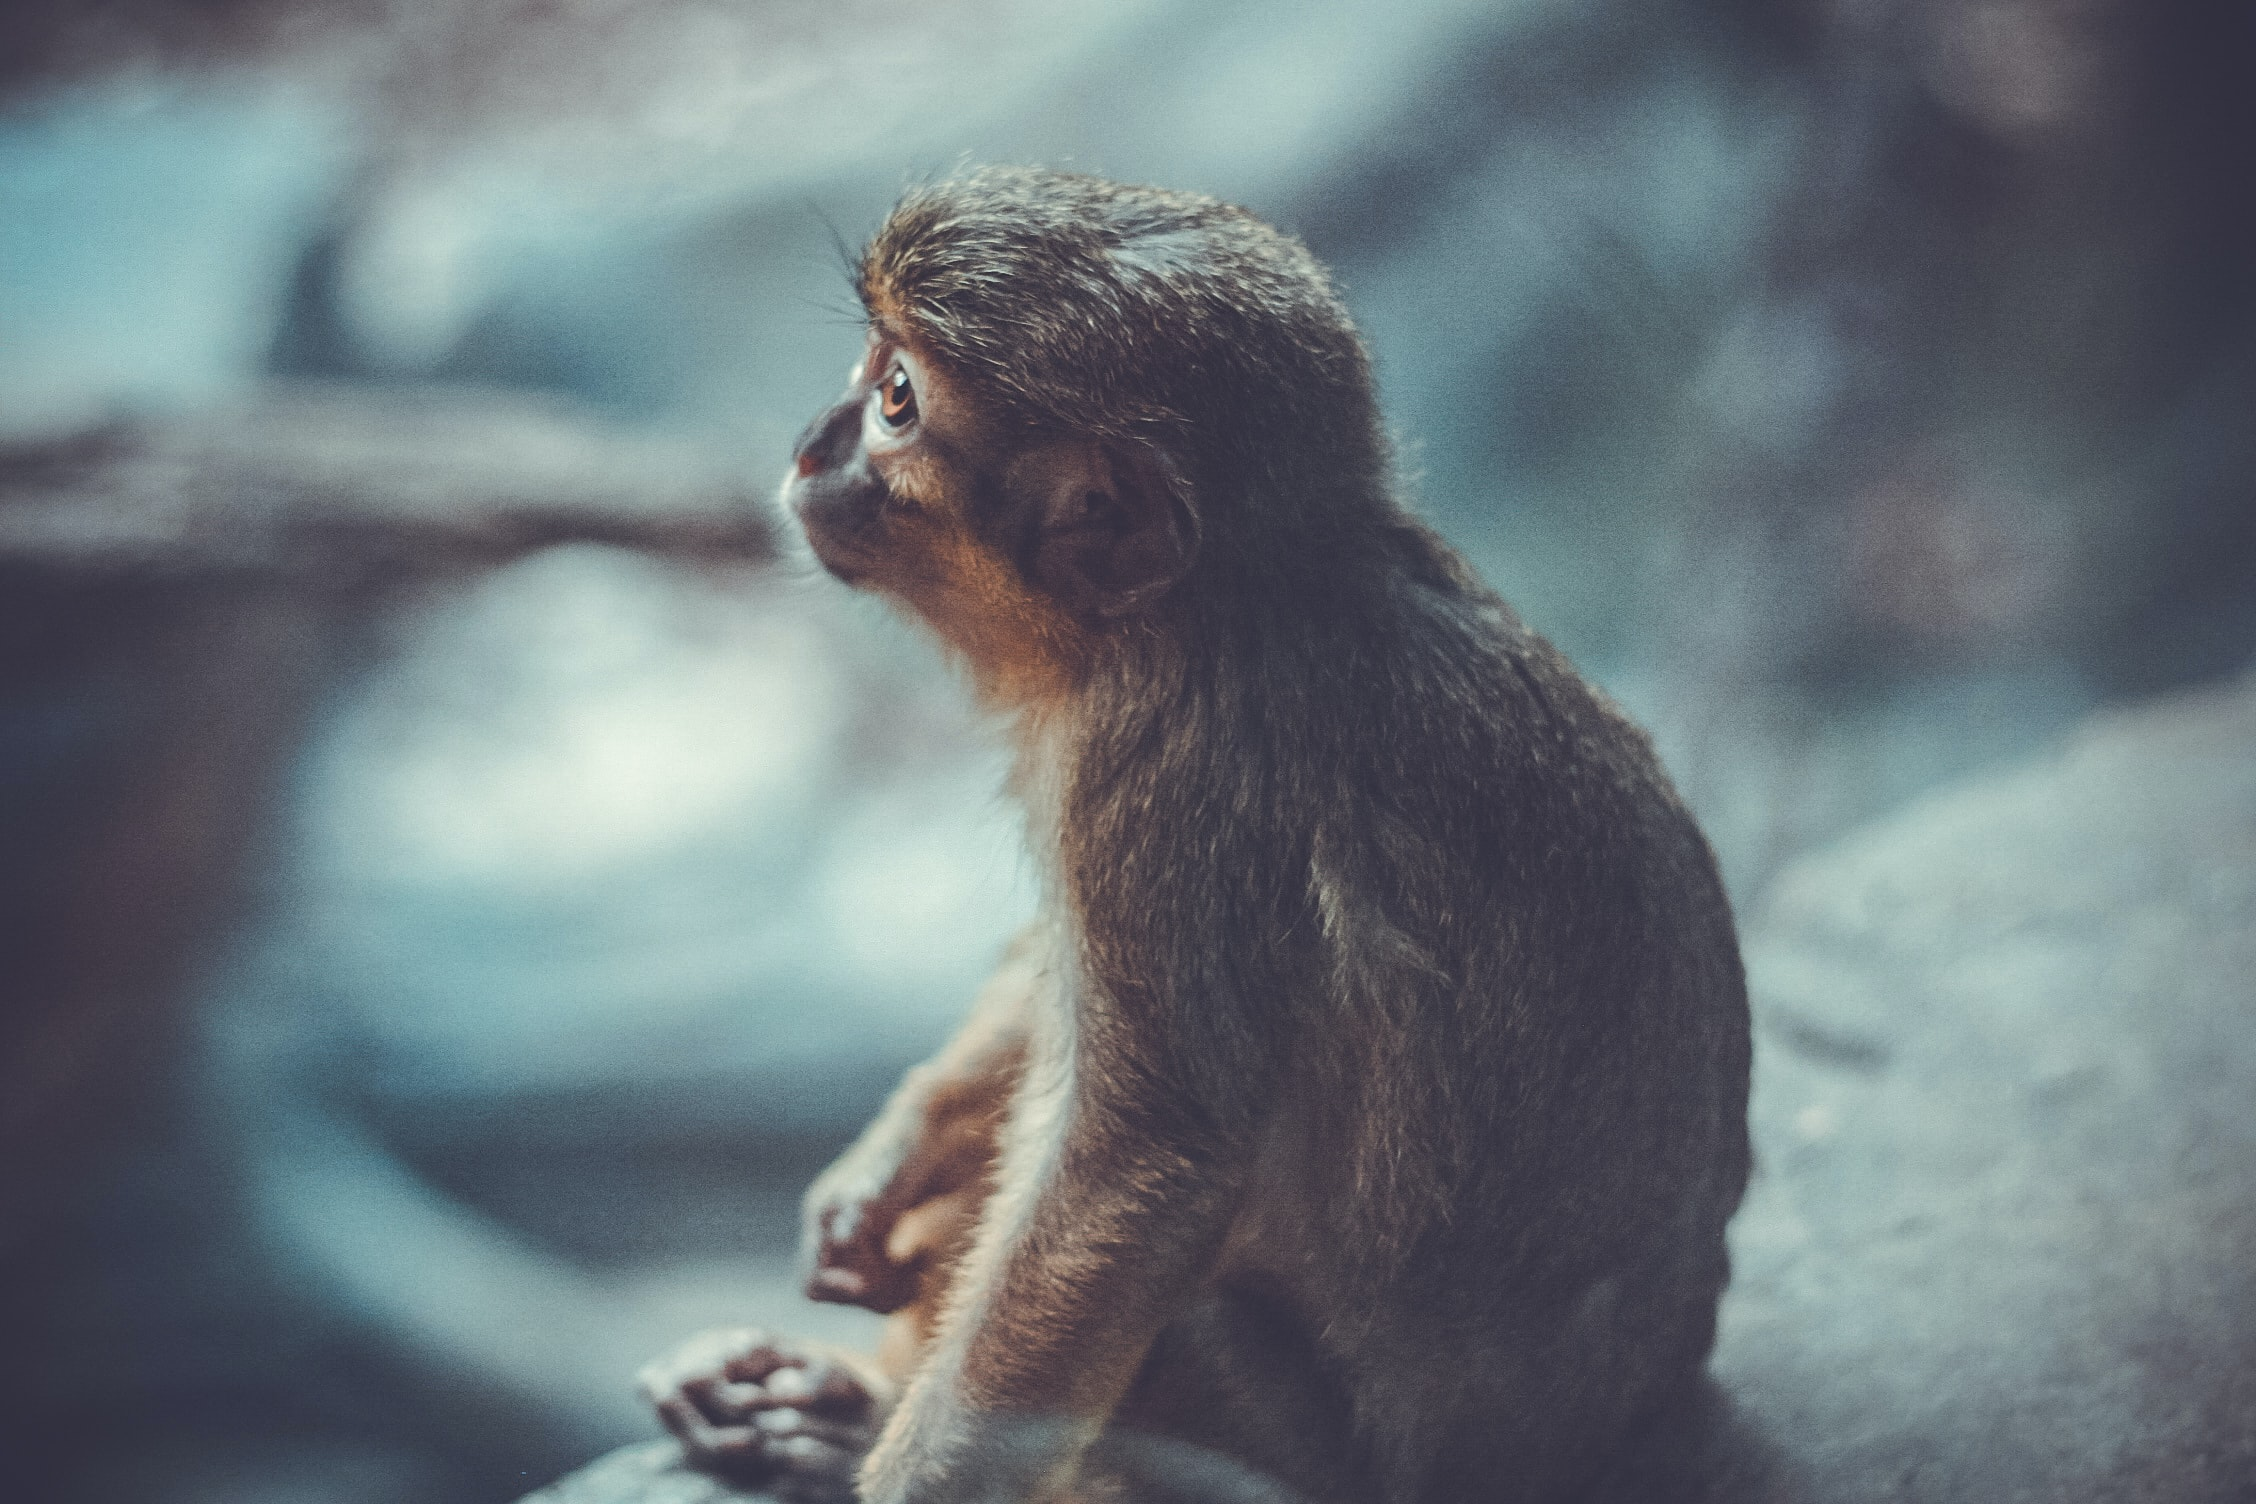 shallow photography of monkey sitting on grey stone looking elsewhere